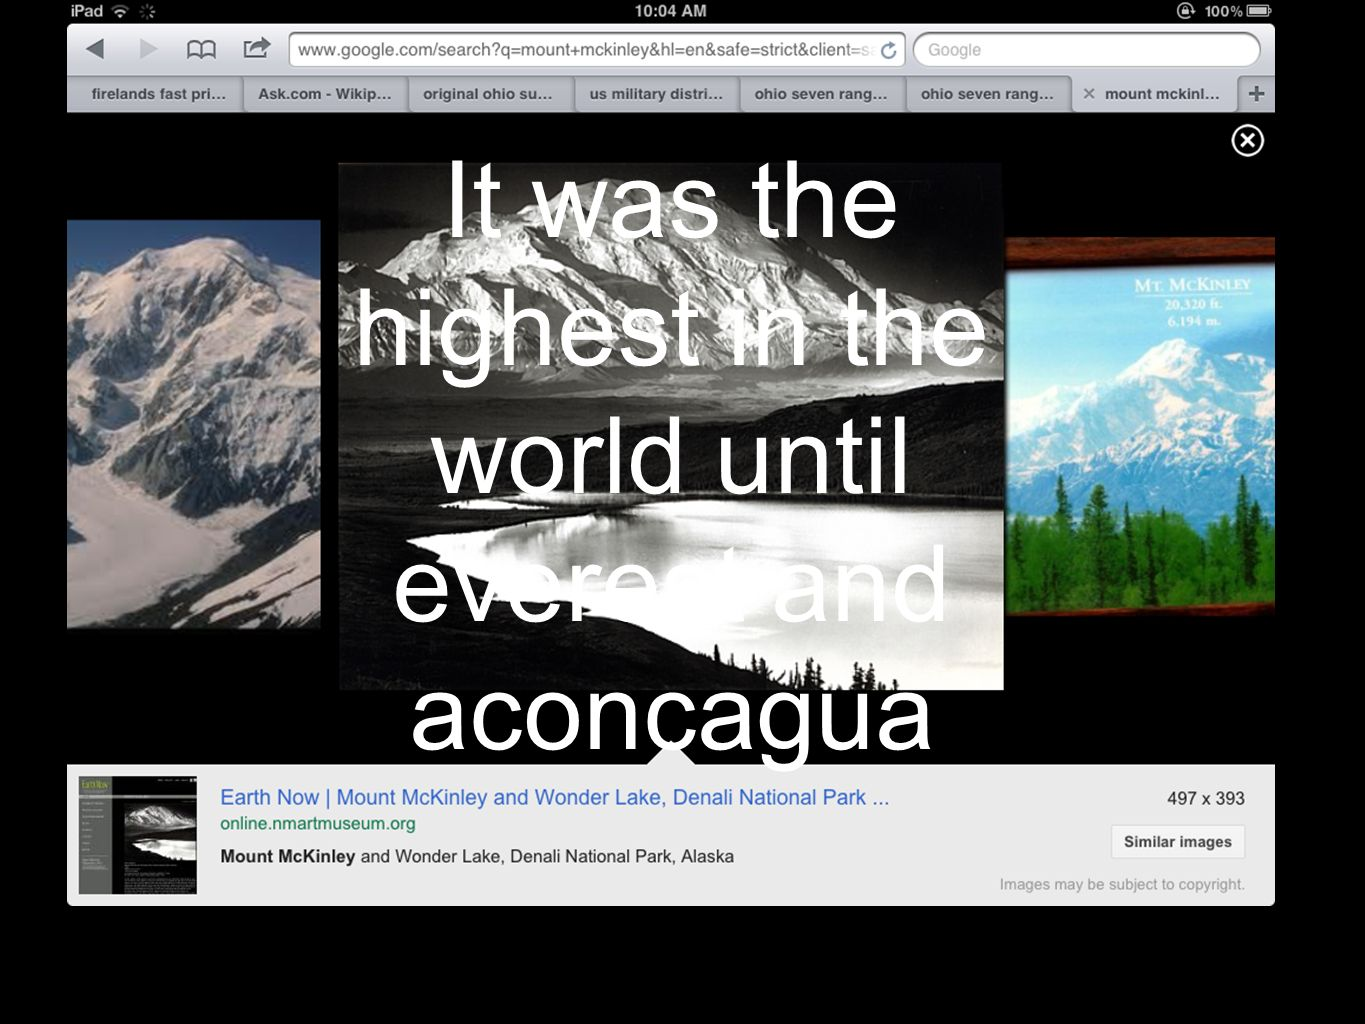 It was the highest in the world until everest and aconcagua